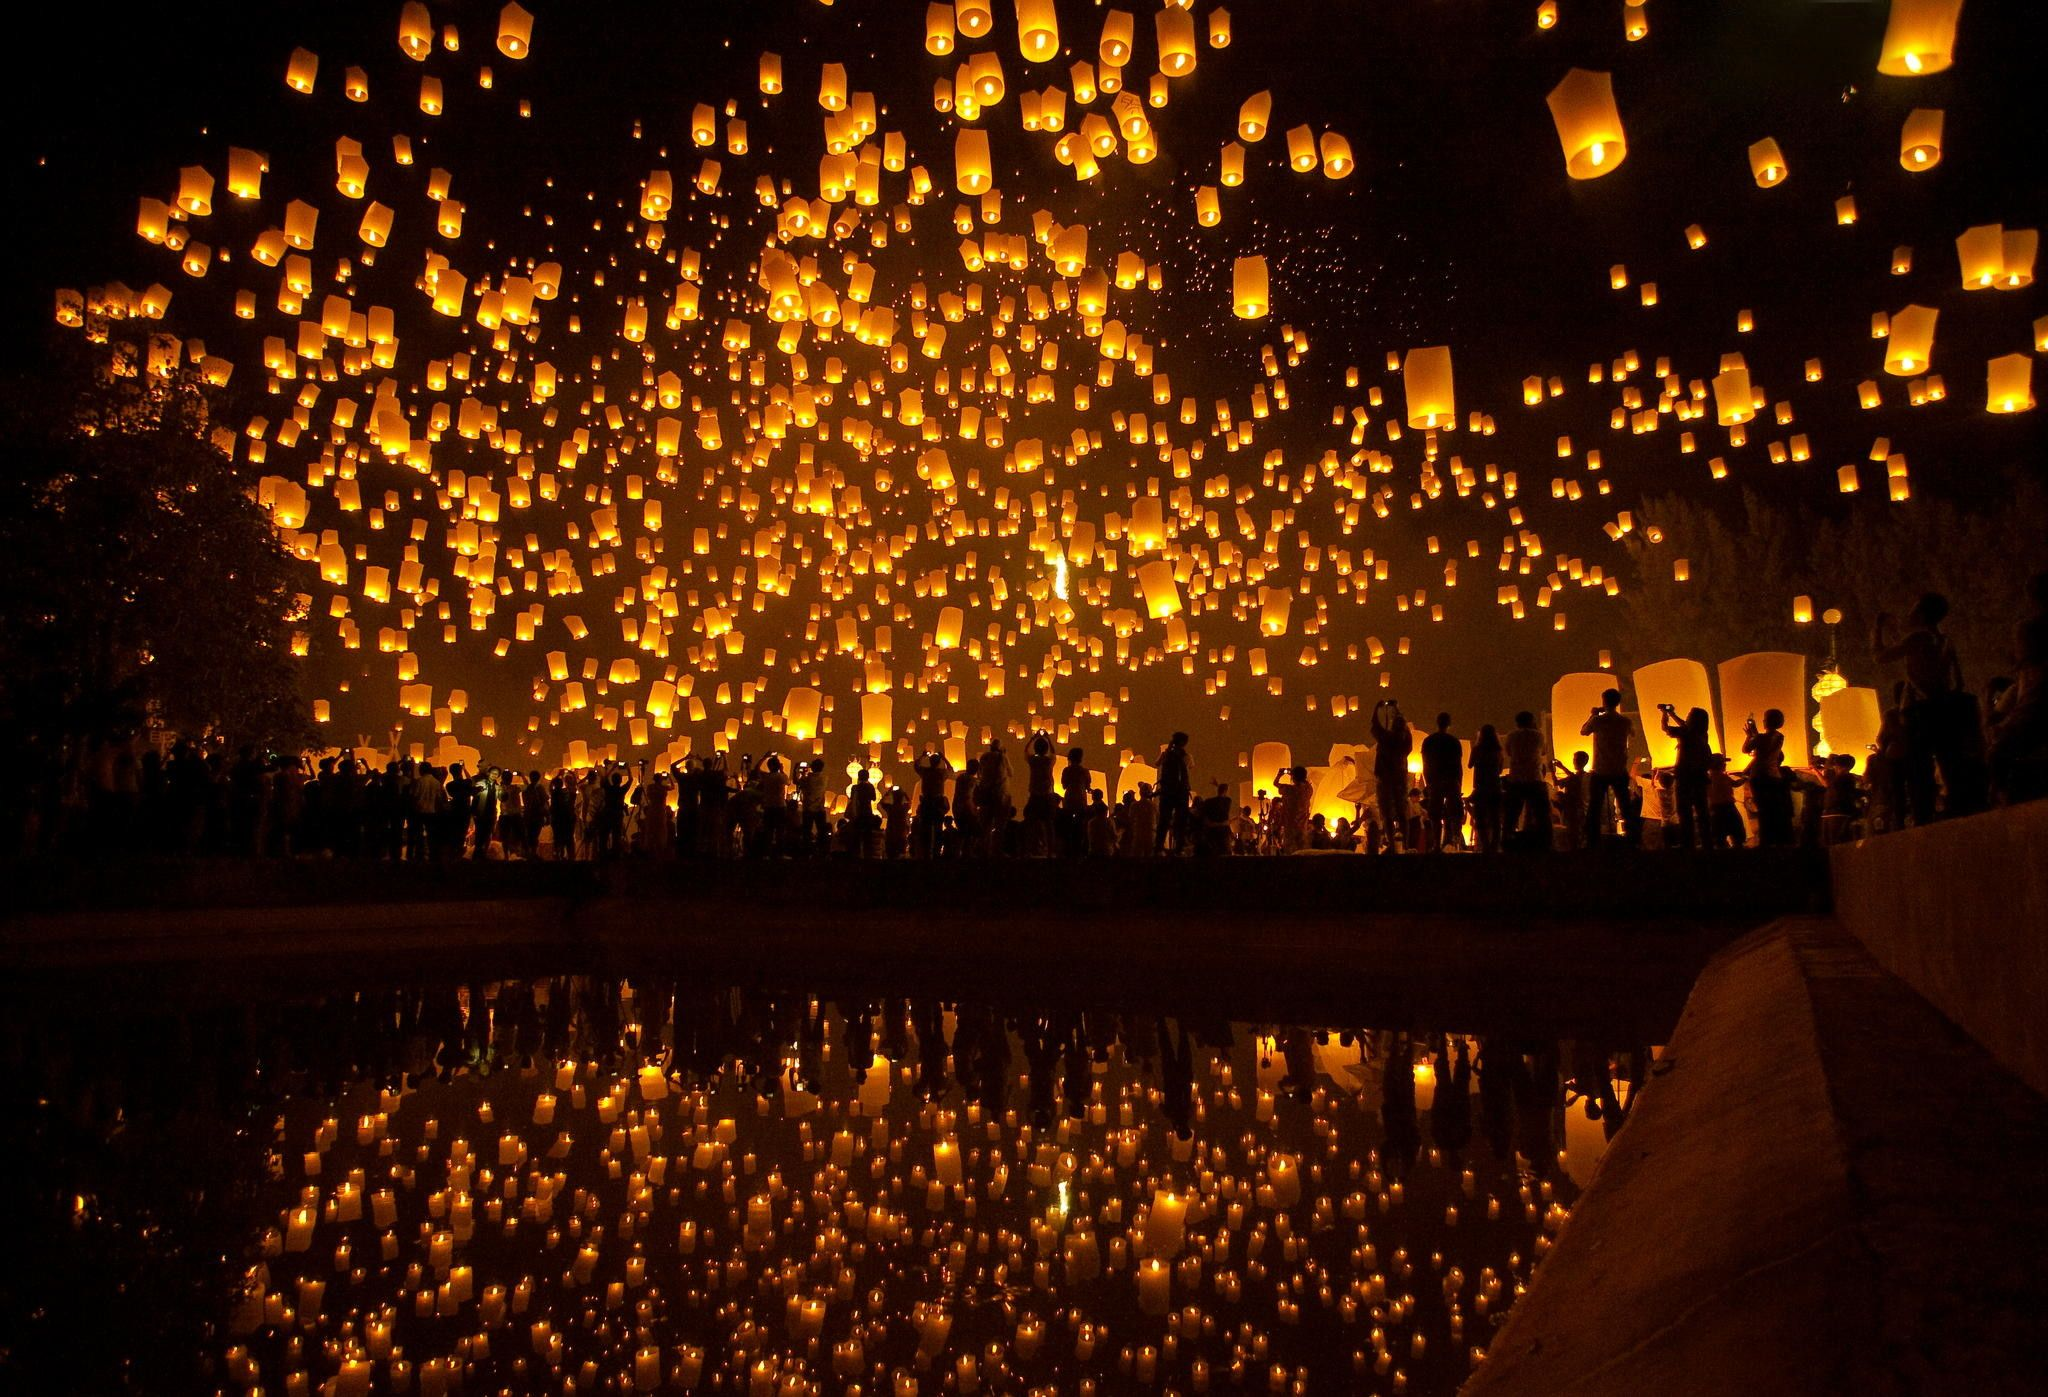 Lantern Festival Wallpapers - Top Free